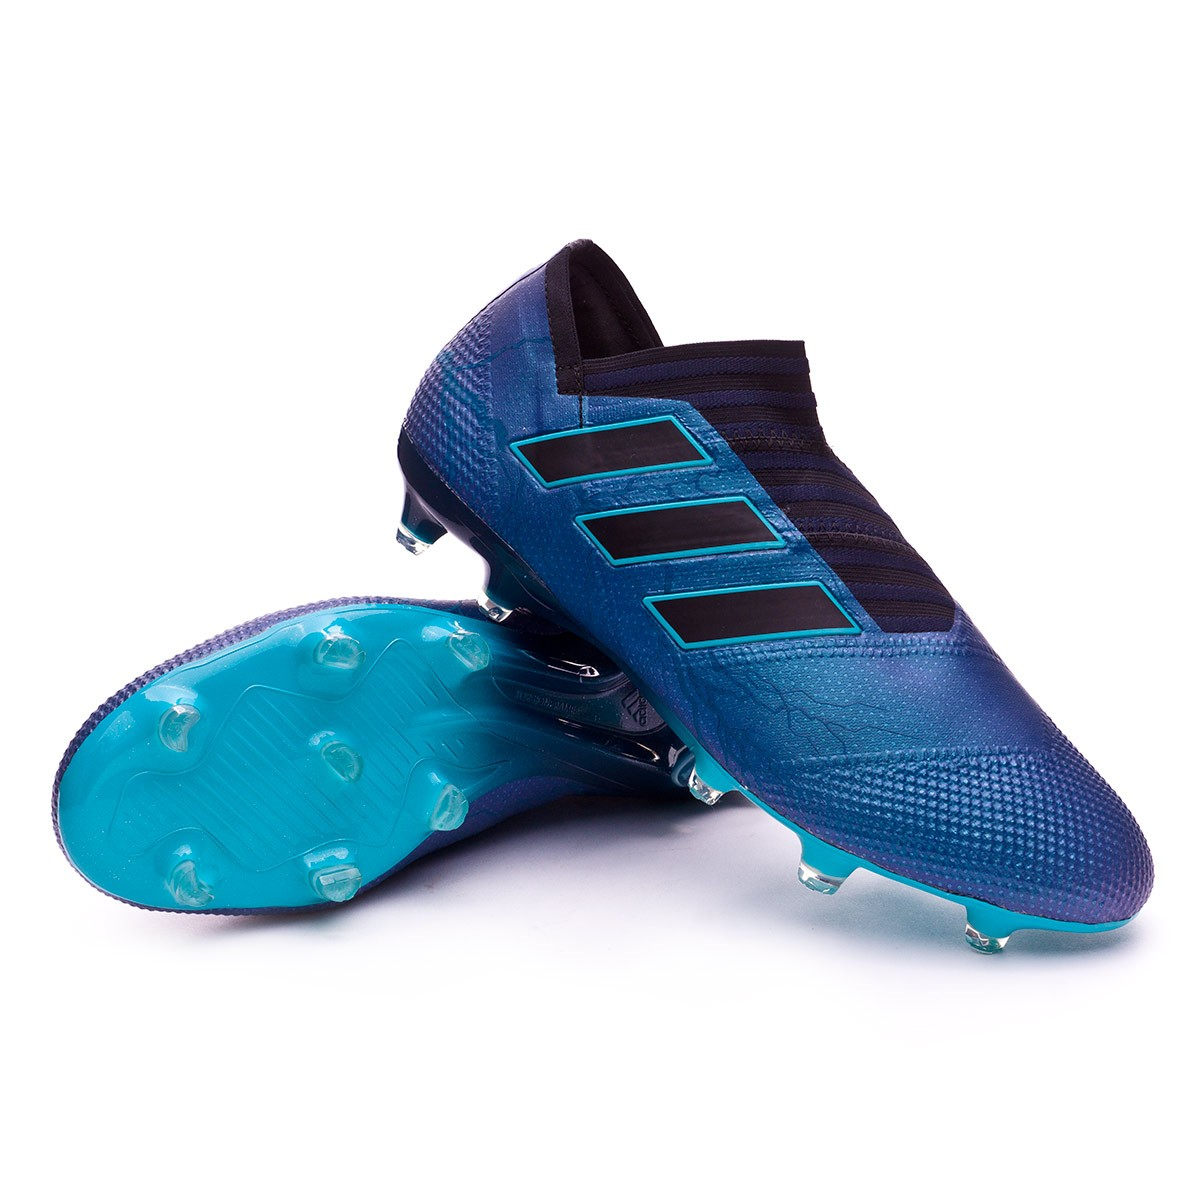 ... Ground - BB6073 - Boot adidas Nemeziz 17+ 360 Agility FG Core black-Energy  blu ... c098848d9